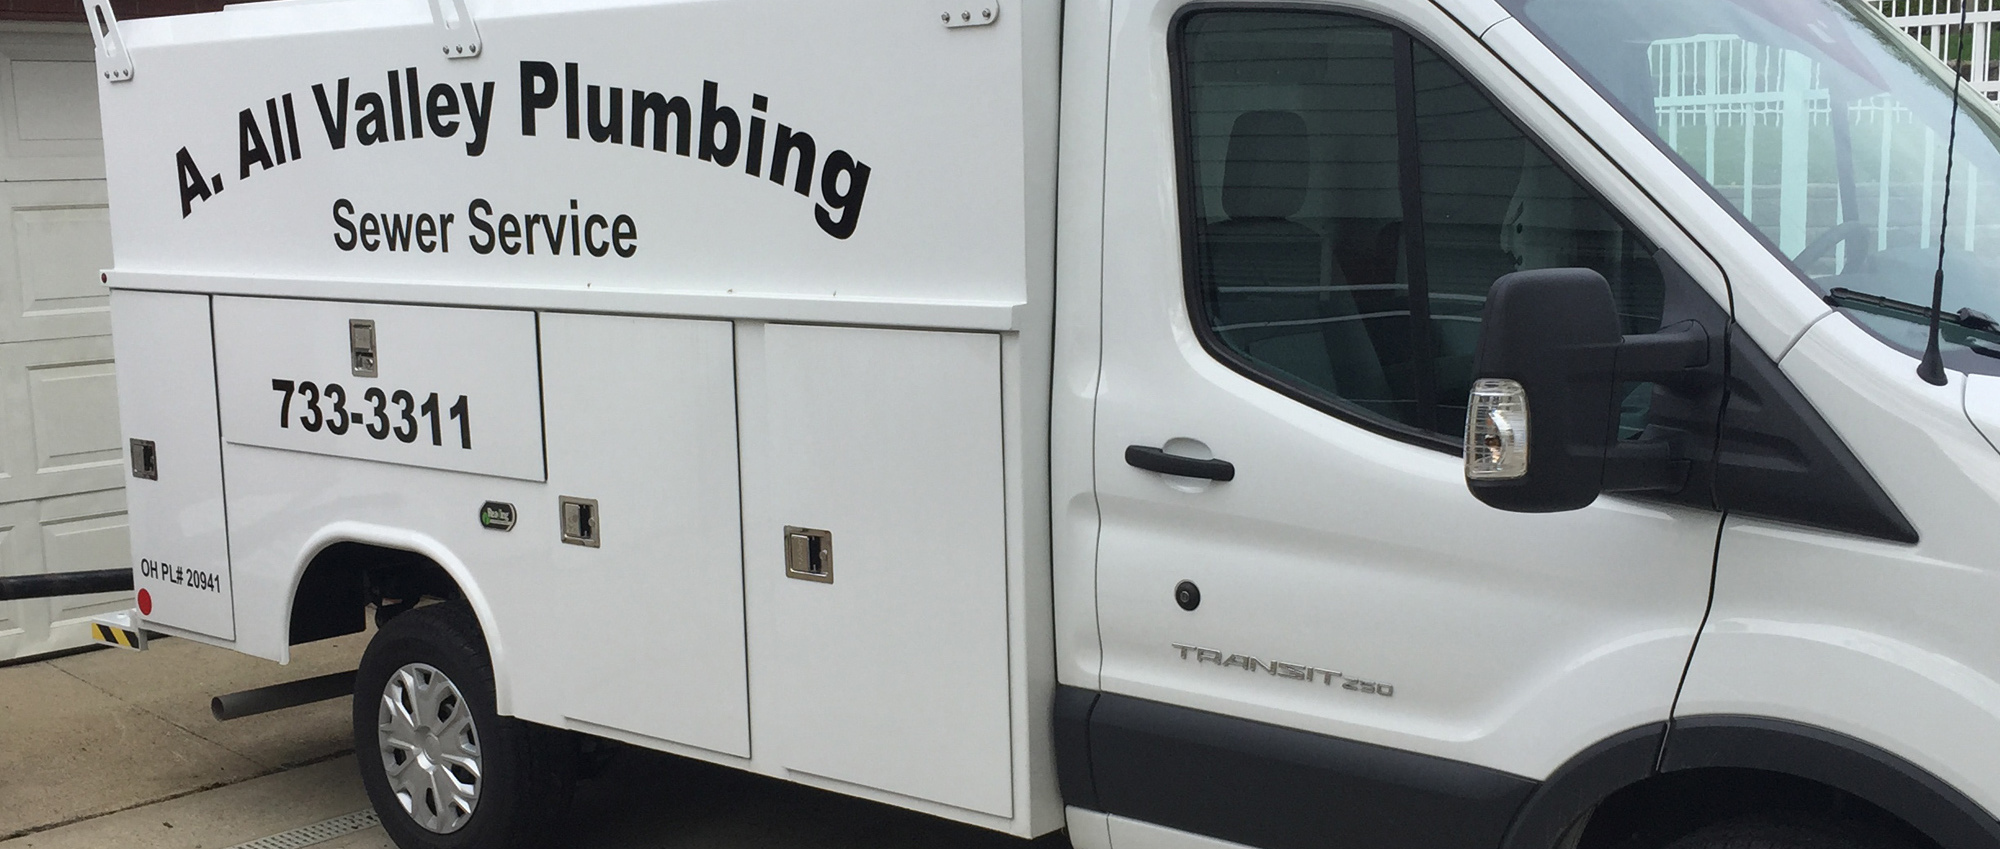 A All Valley Plumbing company's van in it's way to provide fantastic septic services in Cincinnati, OH